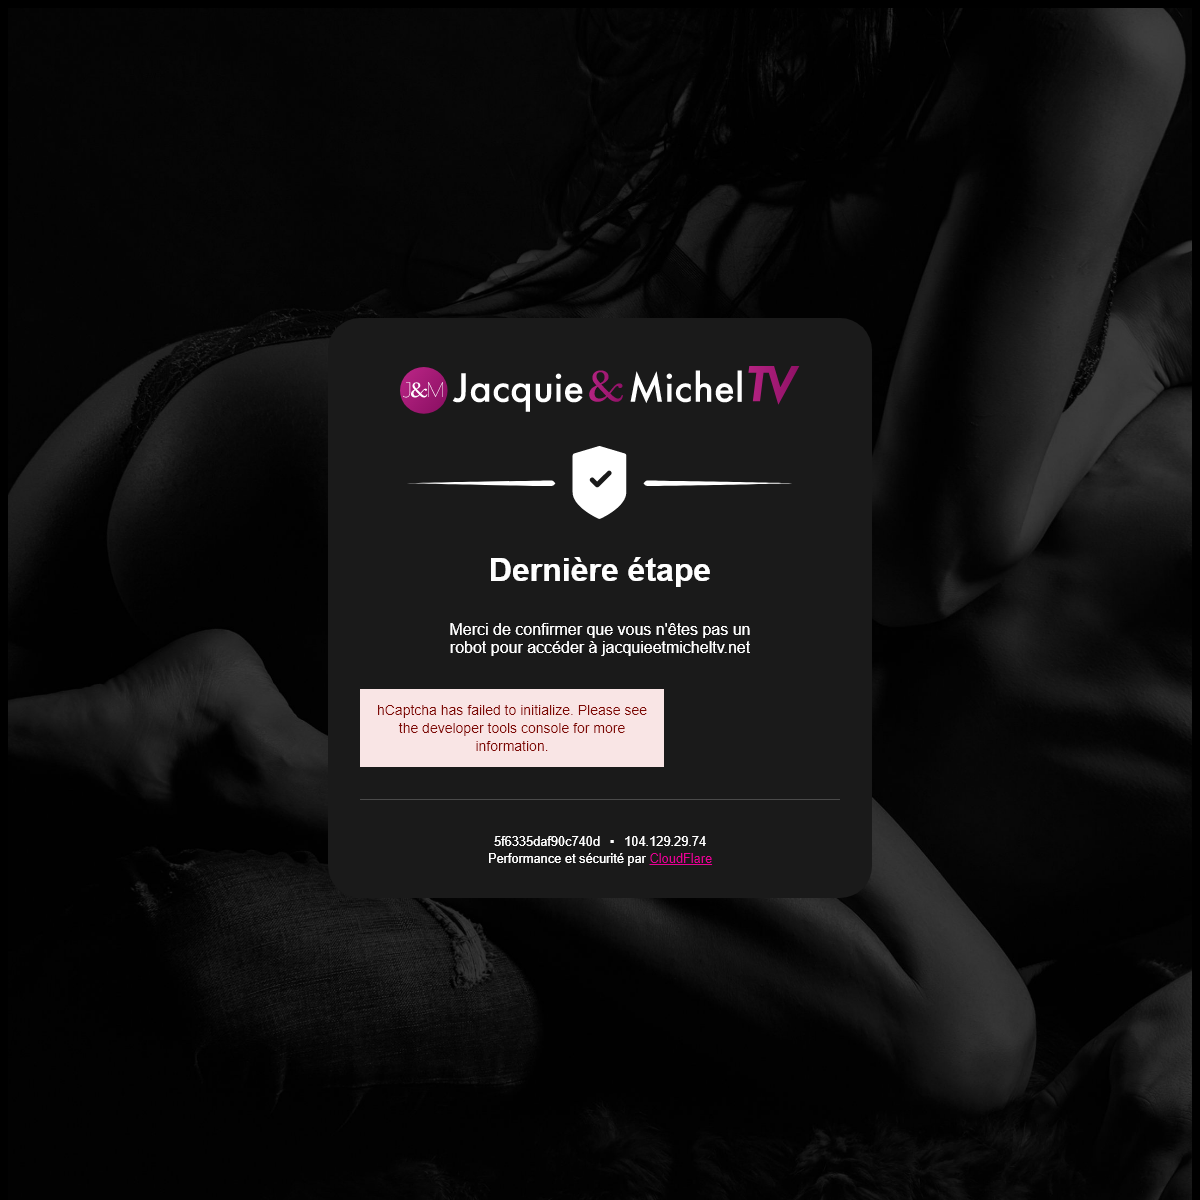 A complete backup of www.jacquieetmicheltv.net